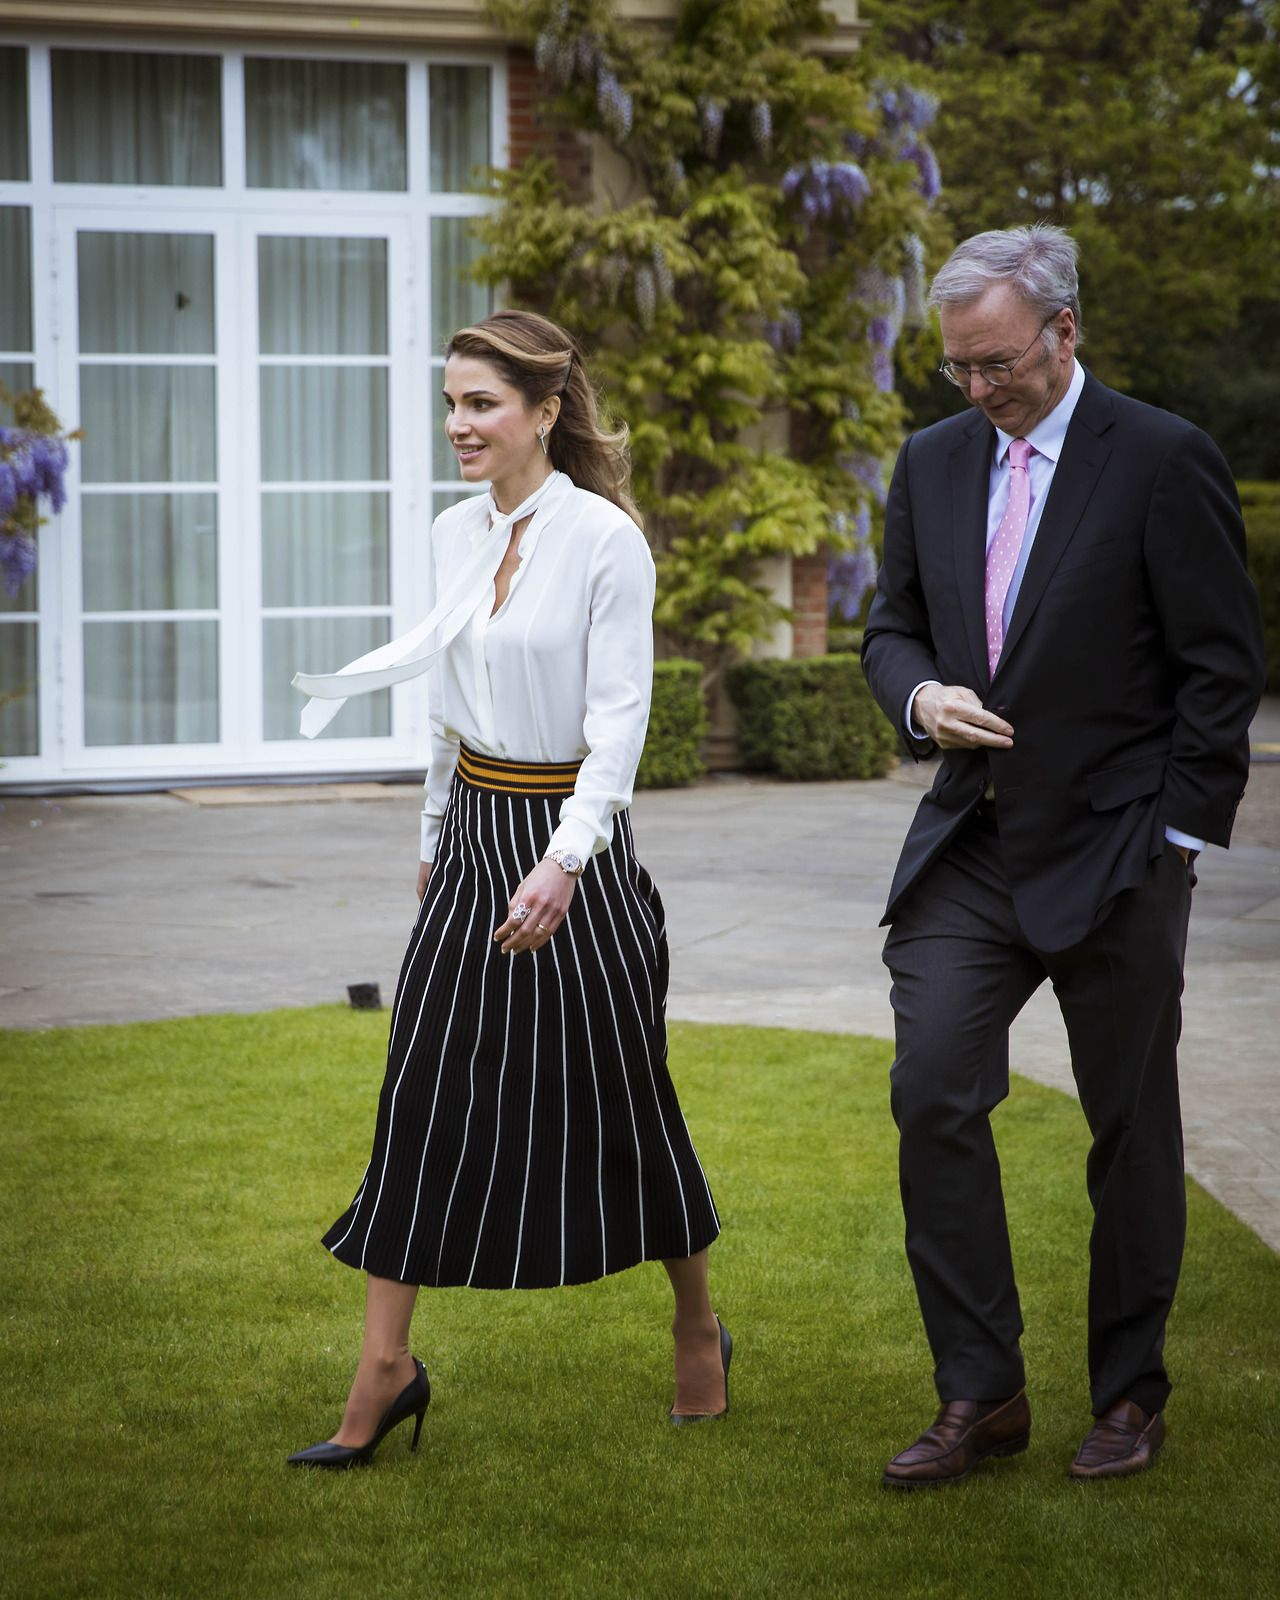 9 May 2017 - Queen Rania attends Google Zeitgeist panel in Hertfordshire - skirt by Roksanda, shoes by Dior, bag by Louis Vuitton